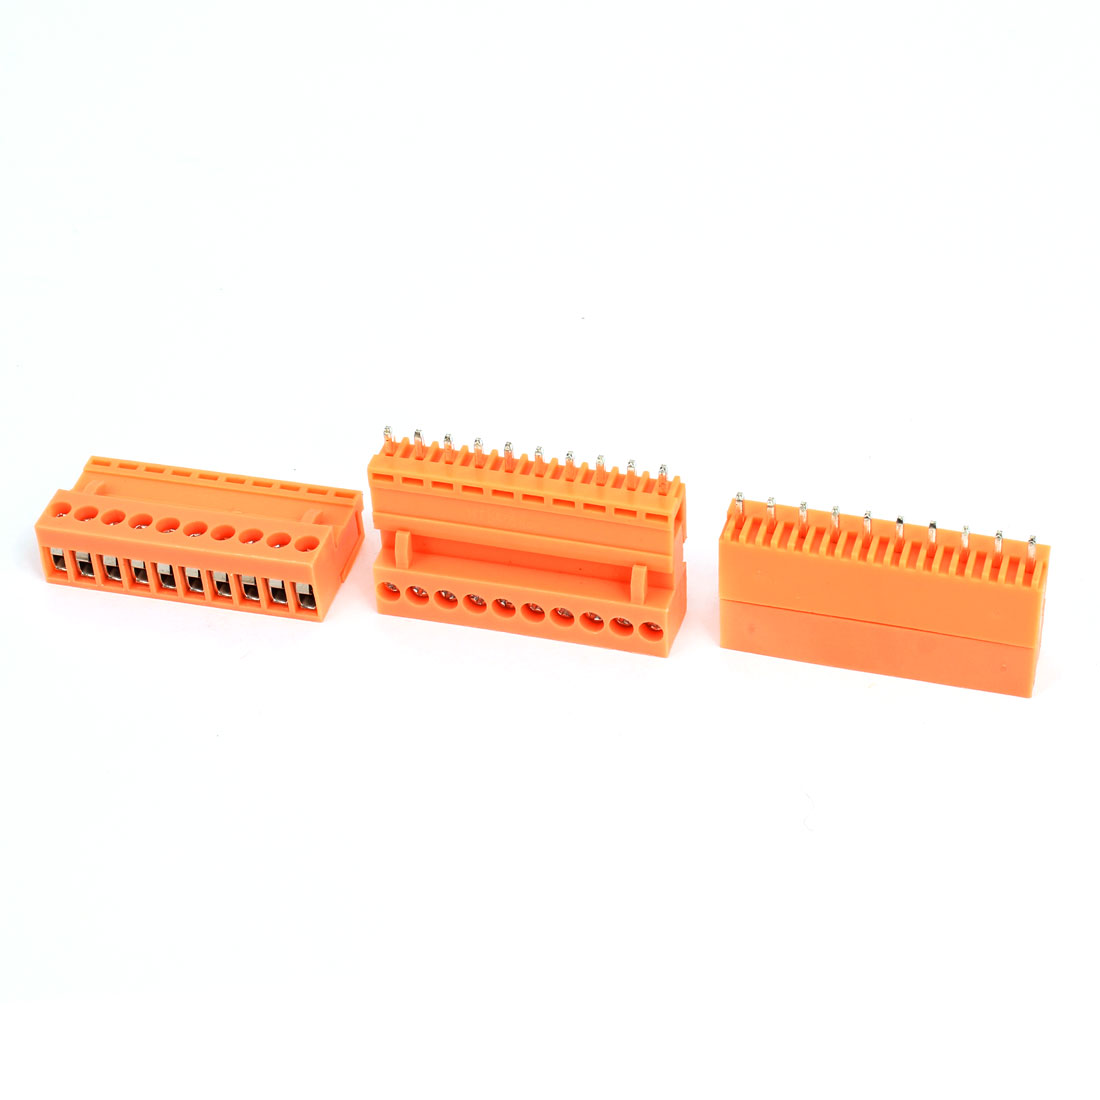 3 Pcs AC 300V 10A 10P PCB Screw Terminal Block Connector 3.96mm Pitch Orange